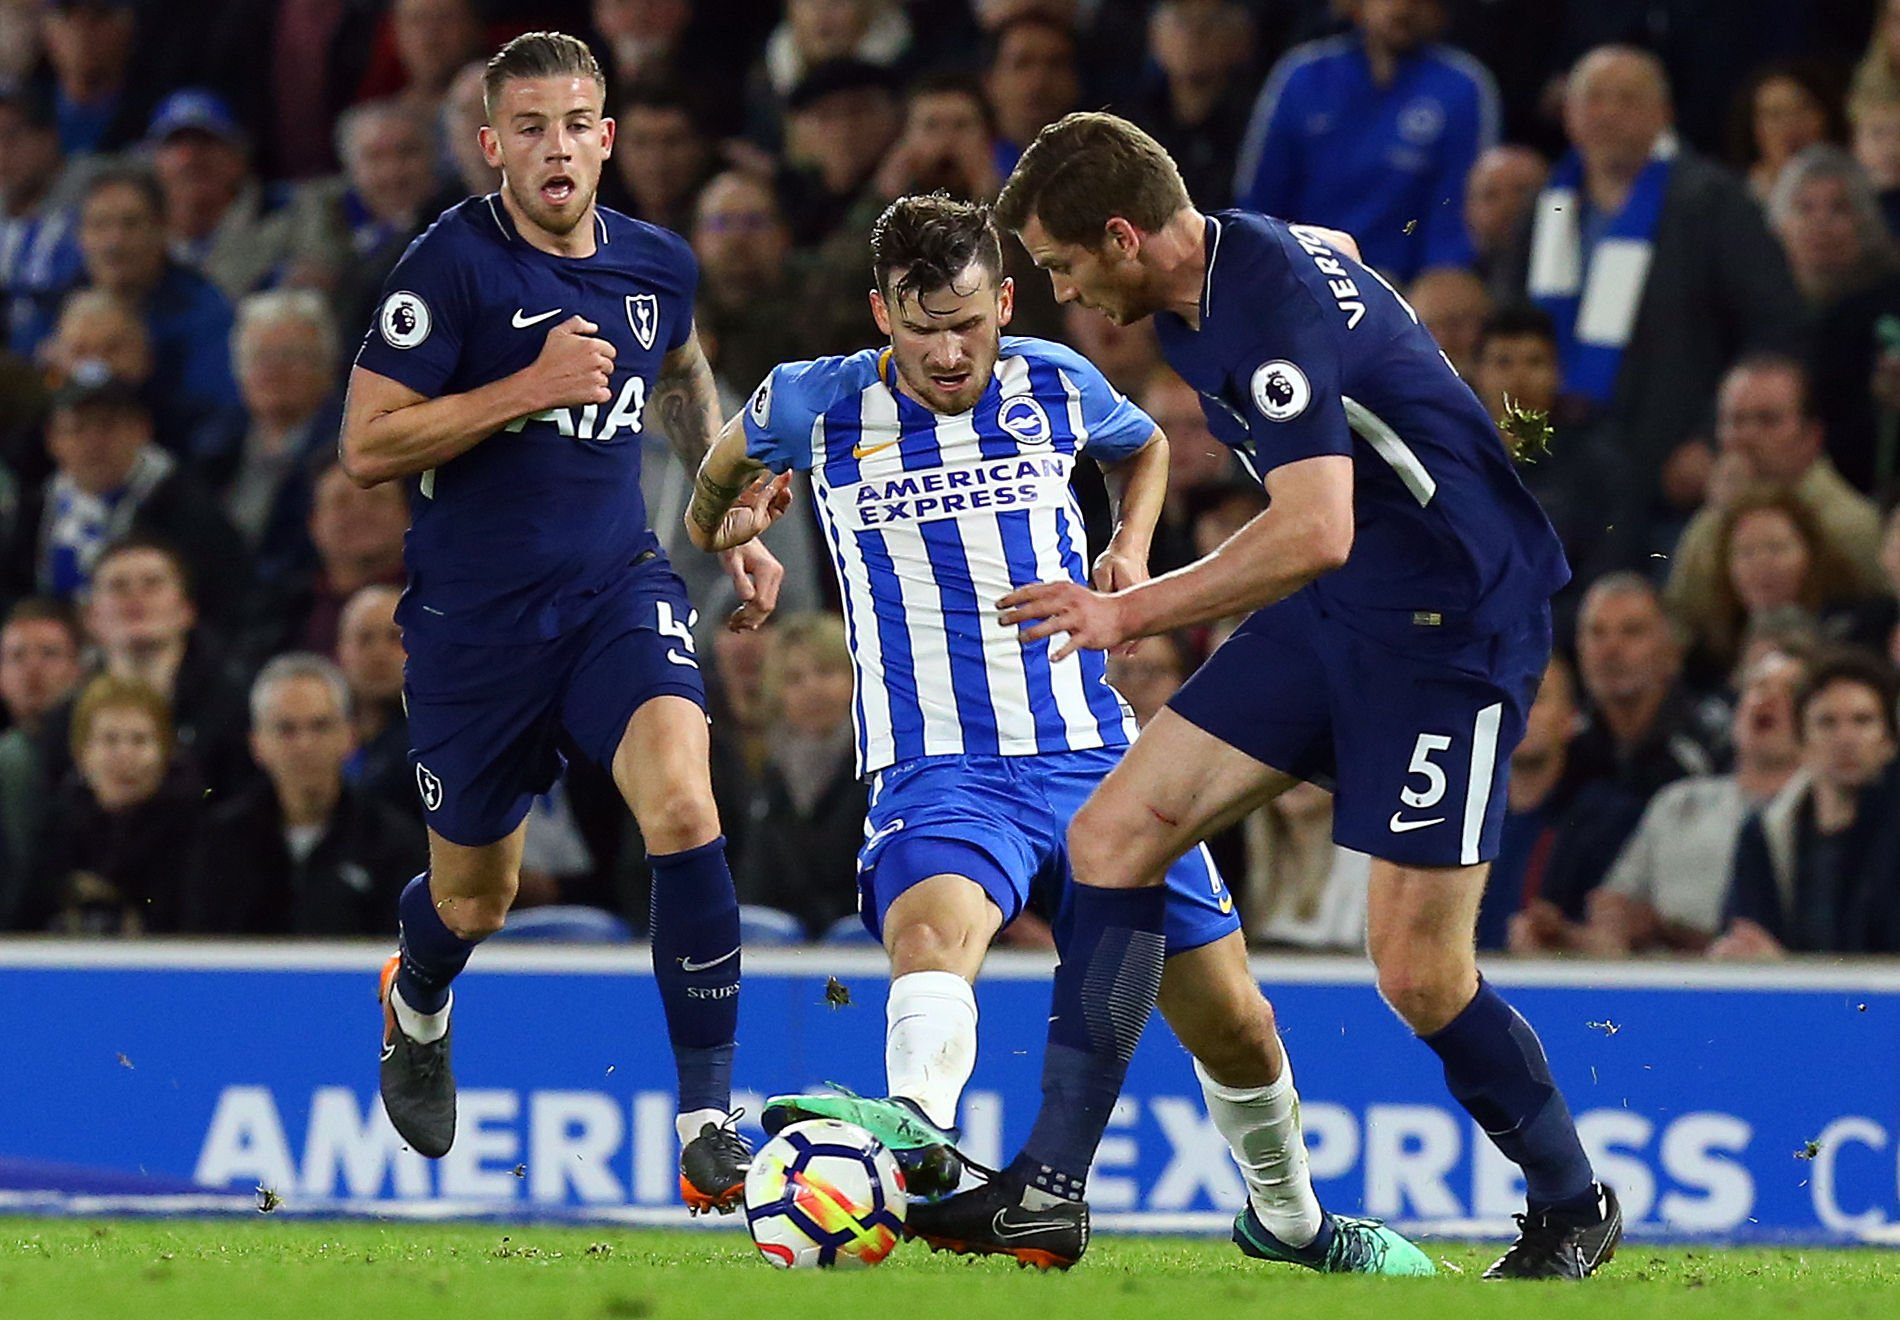 Pascal Gross knows he and Albion can achieve more away from home